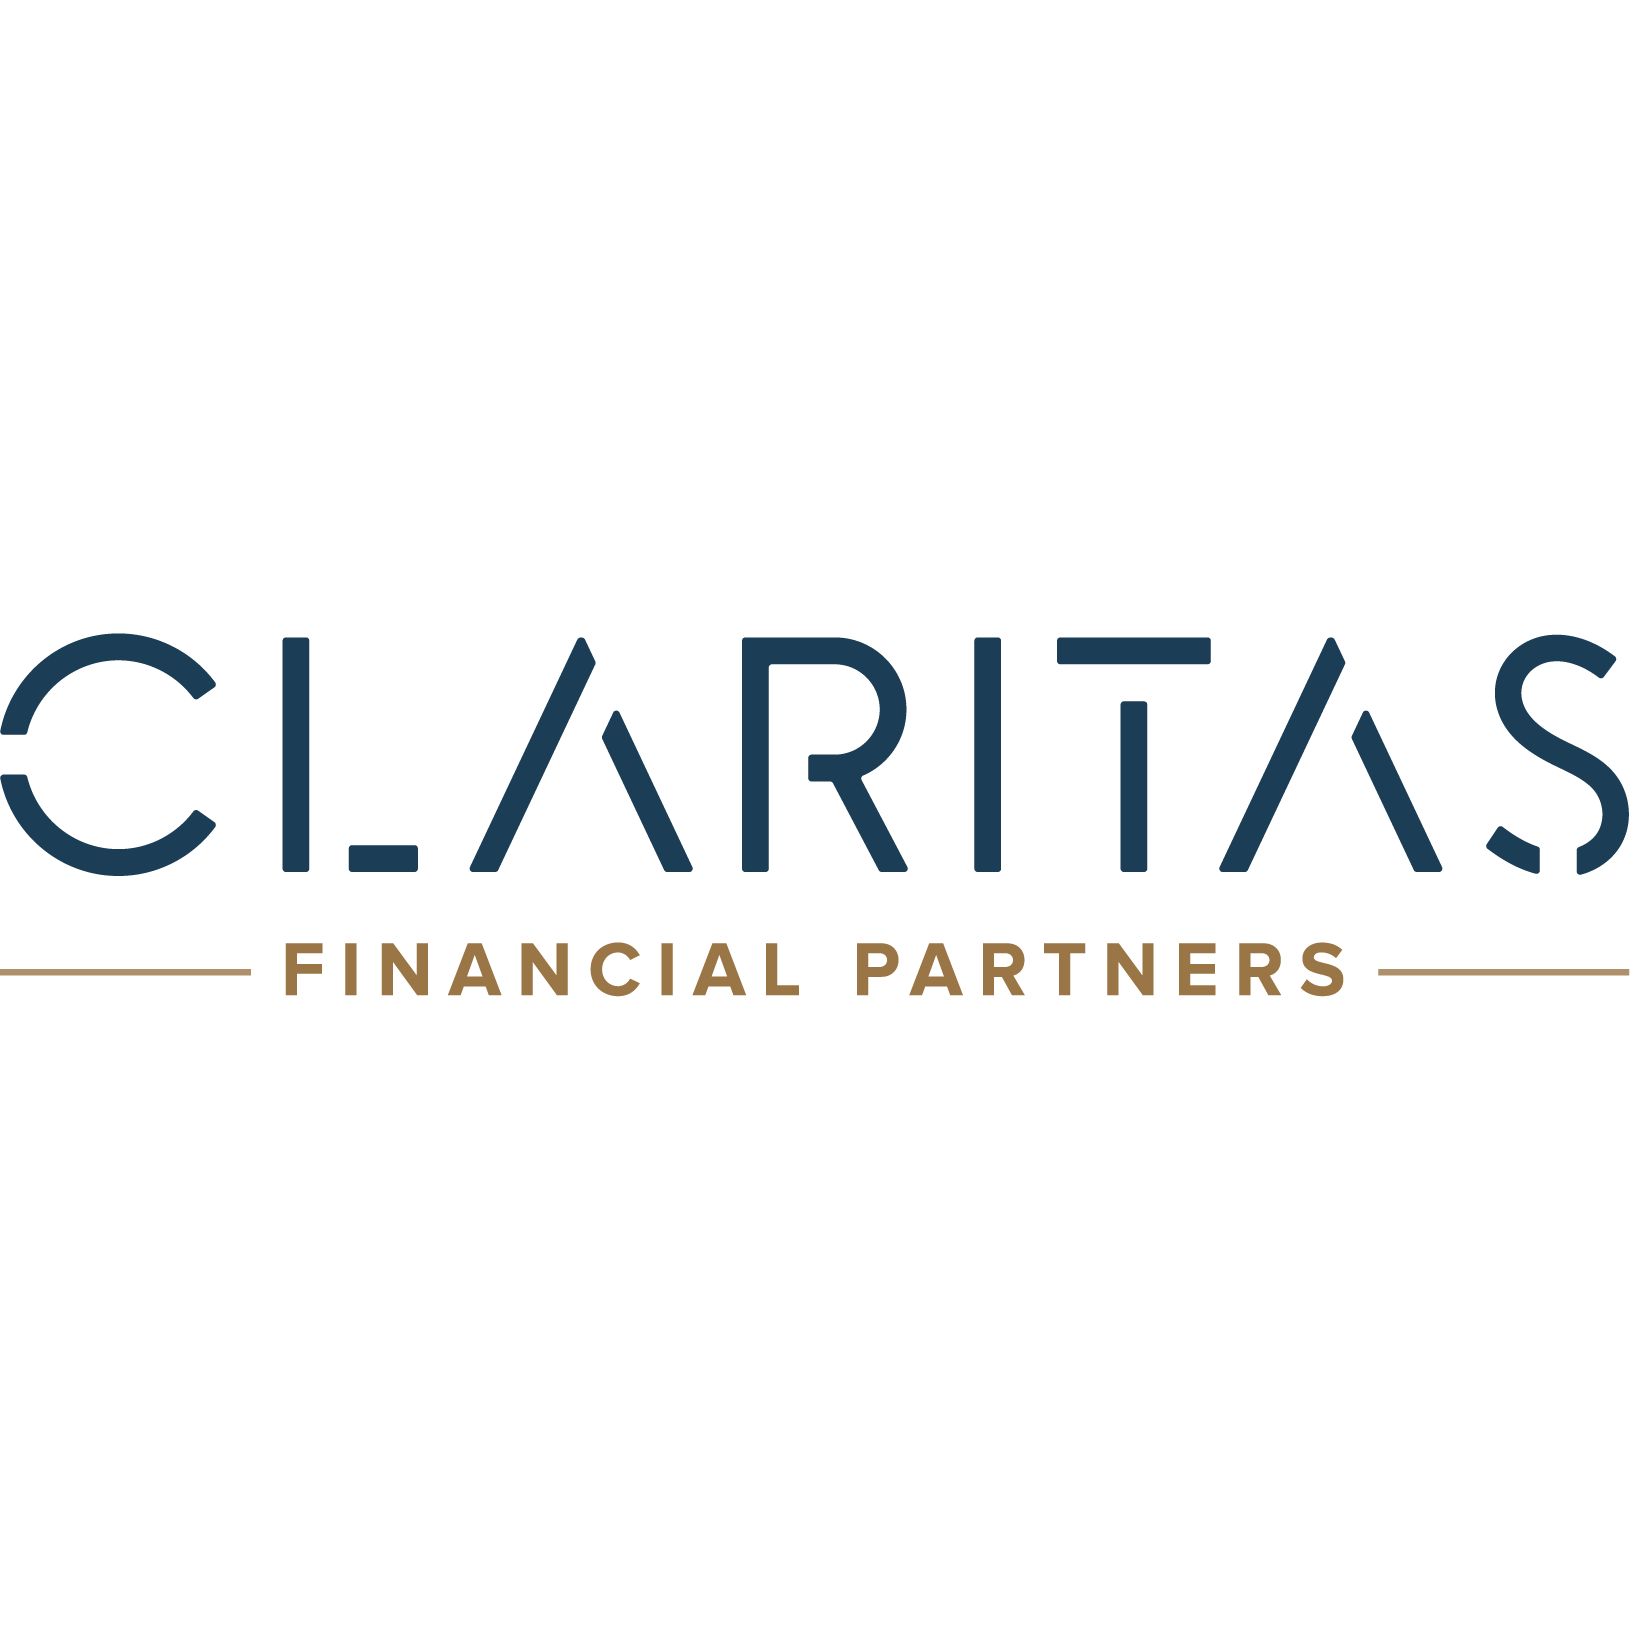 Claritas Financial Partners